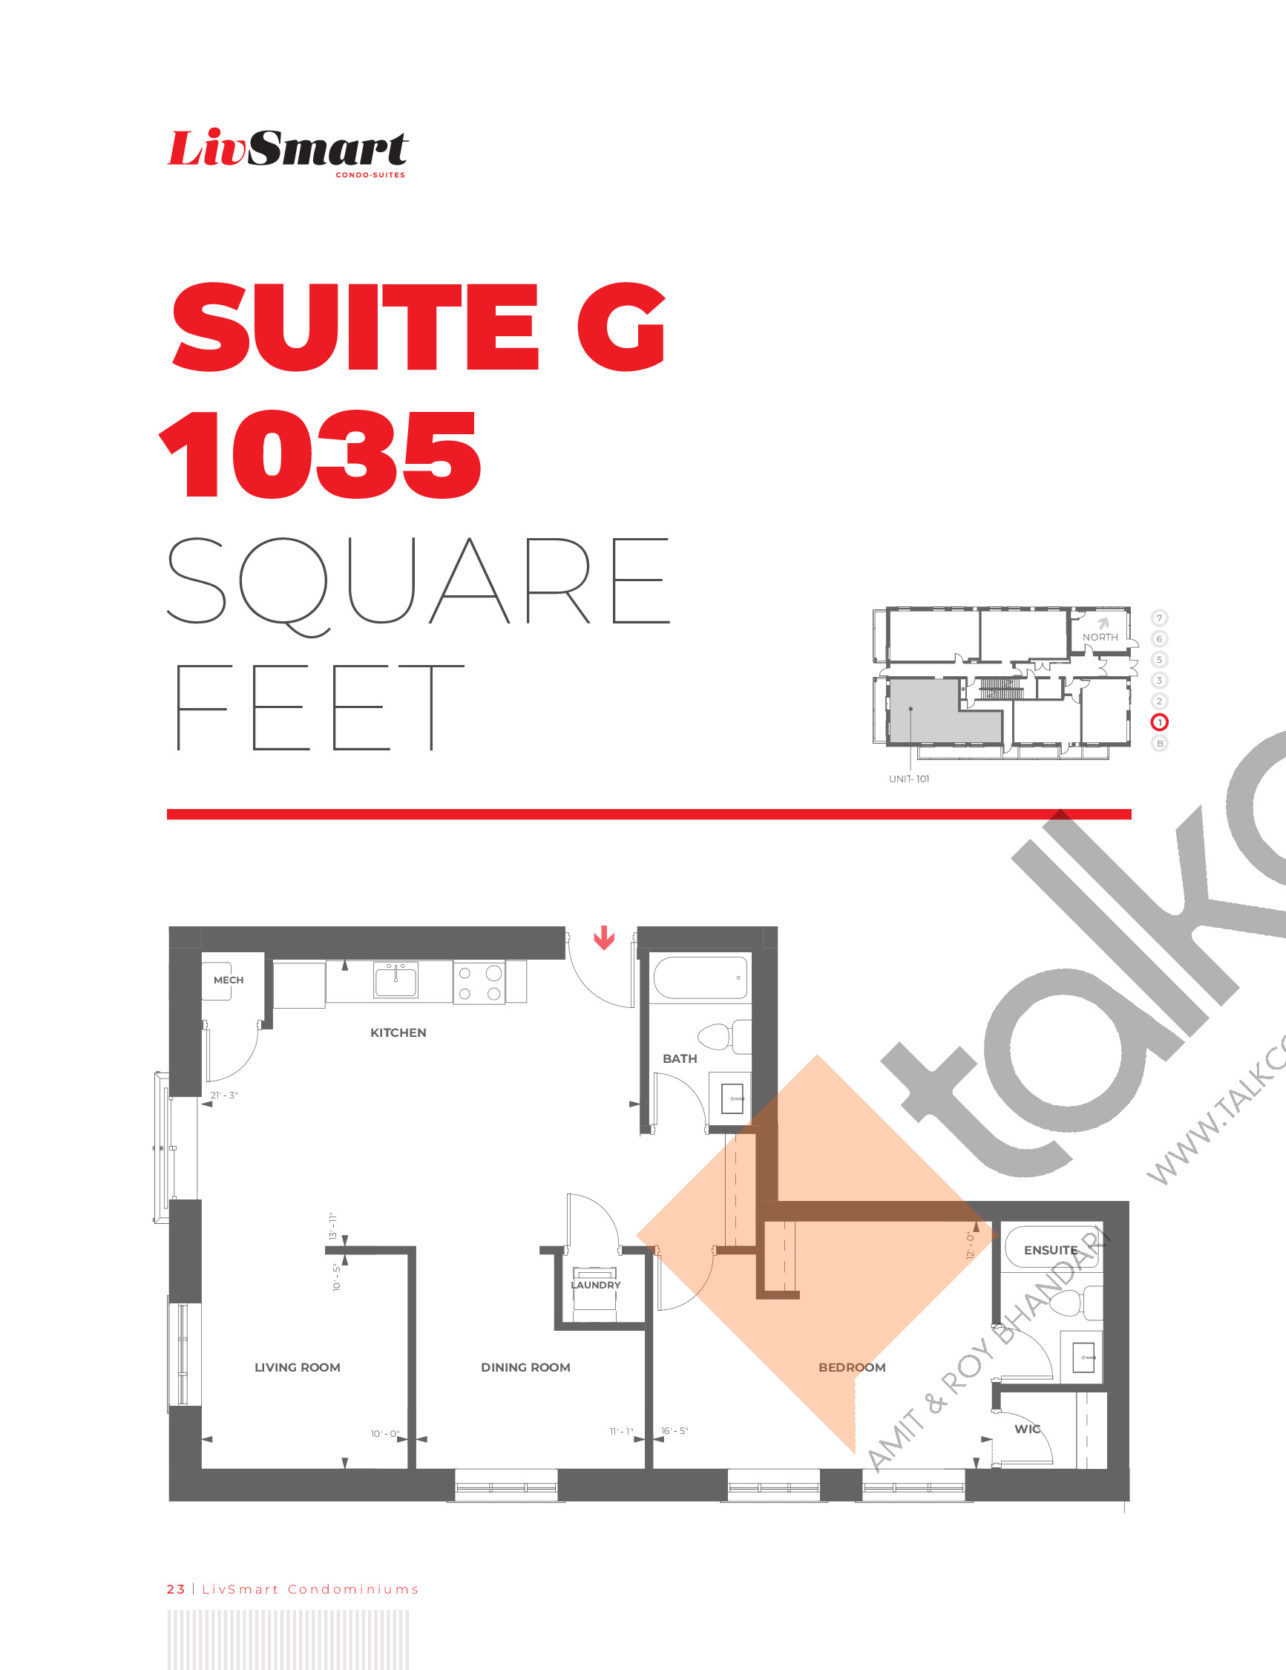 Suite G Floor Plan at LivSmart Condos - 1035 sq.ft